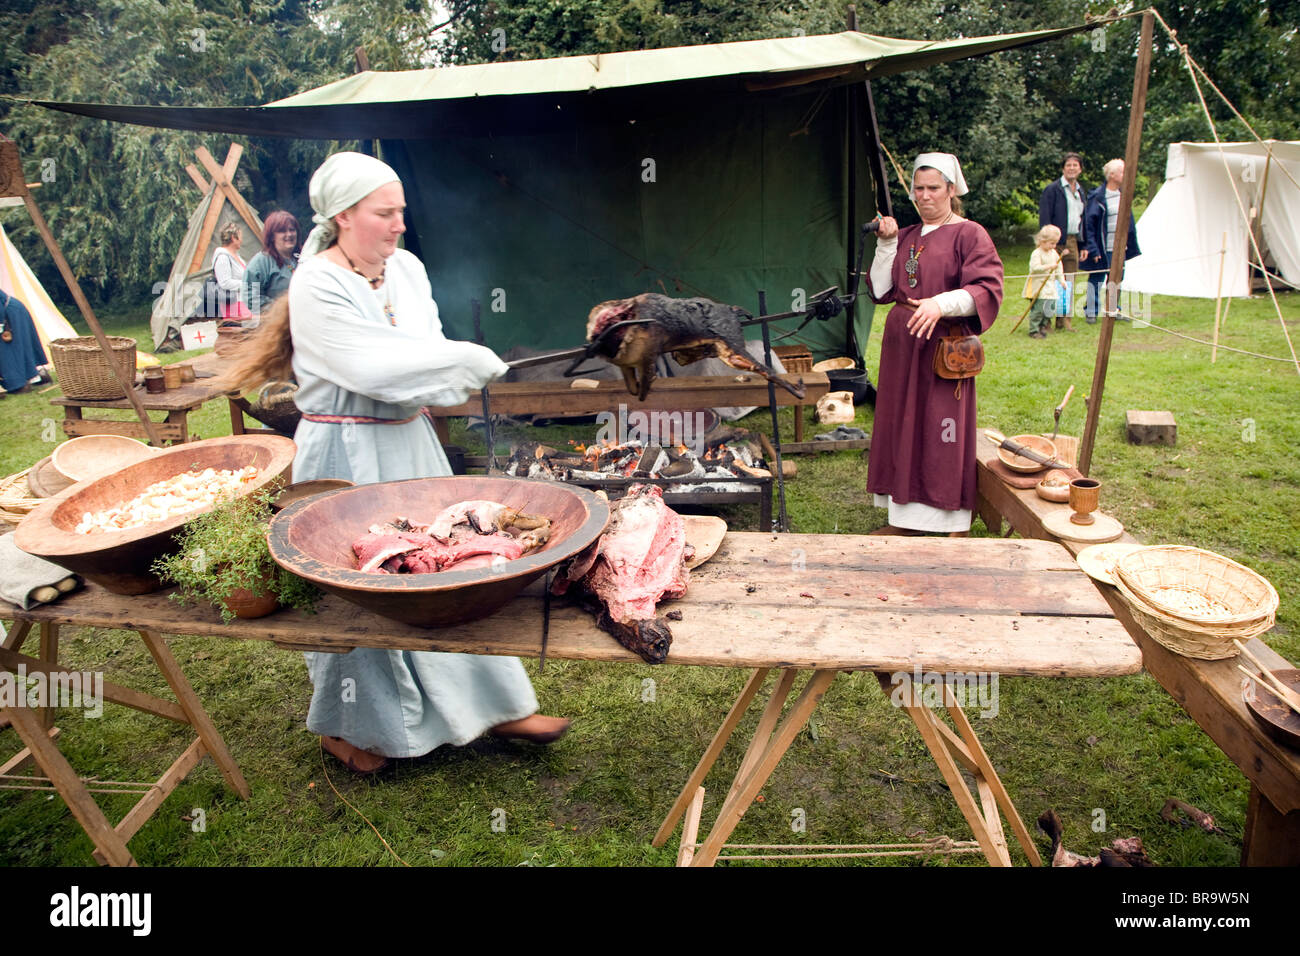 Women carry cooked deer from fire to table, Historical re-enactment Saxon, Viking, Norman history, Woodbridge, Suffolk - Stock Image